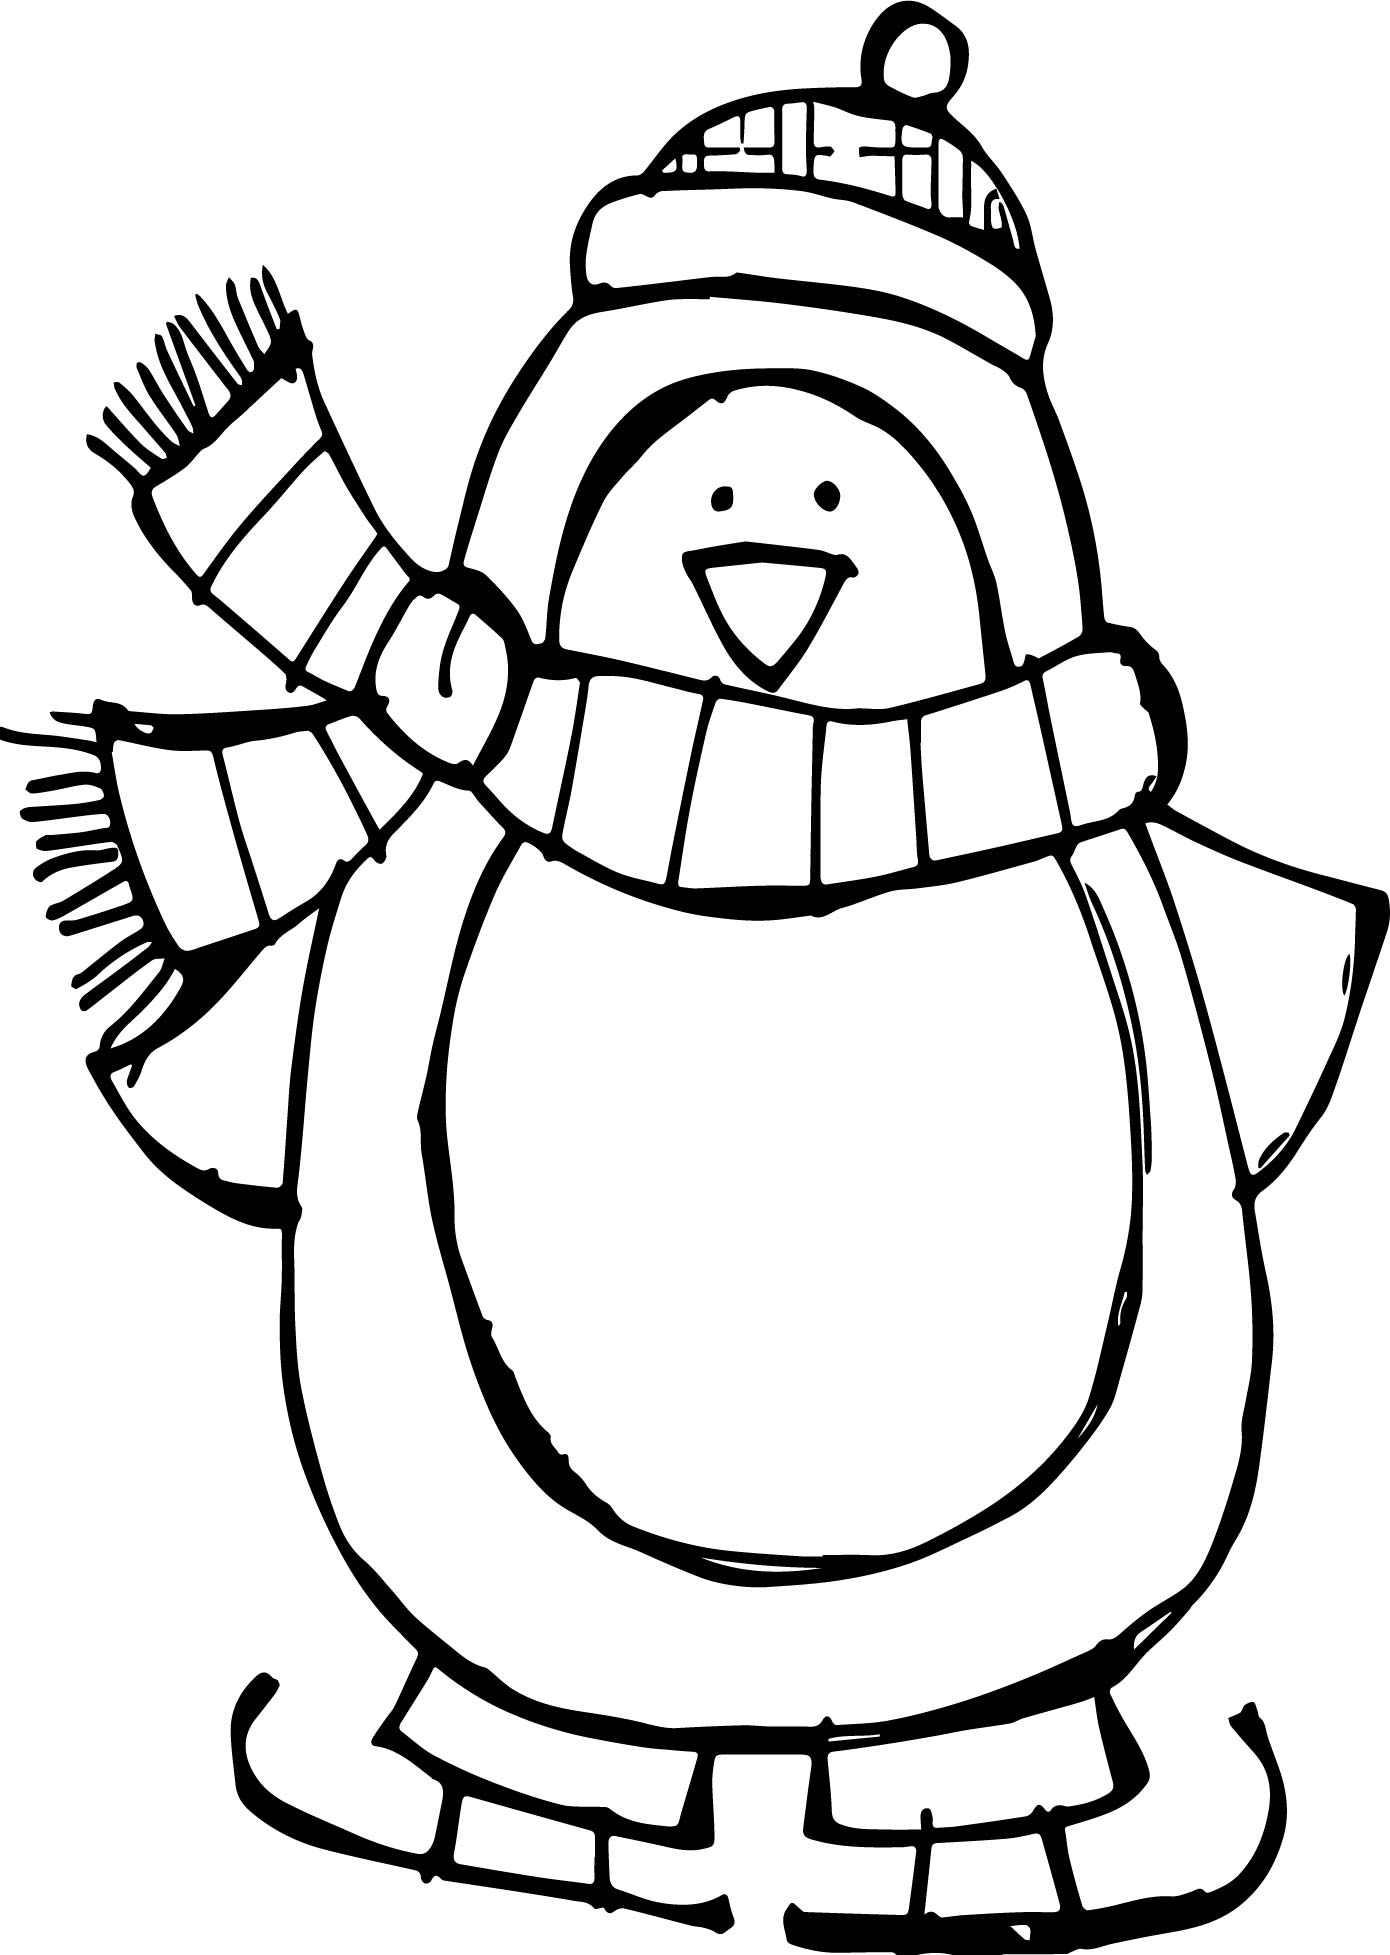 free penguin coloring pages - winter basic penguin coloring page